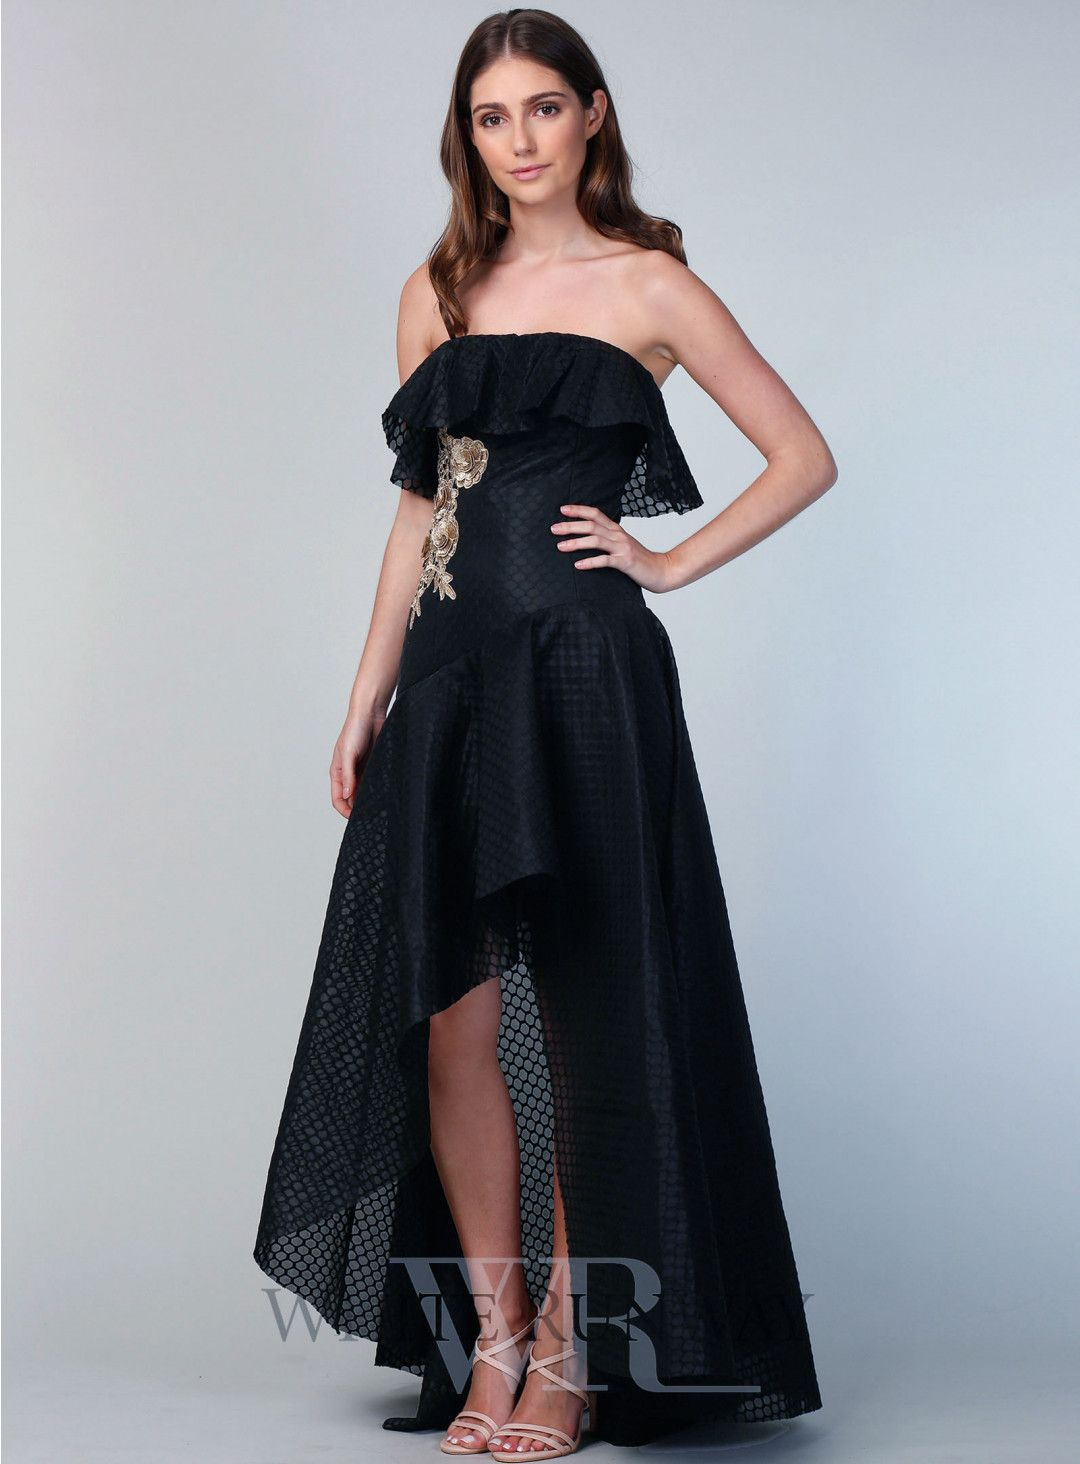 217de7a919 Black Elevation Gown. A gorgeous full length dress by Grace   Hart. A  strapless style featuring frill neckline